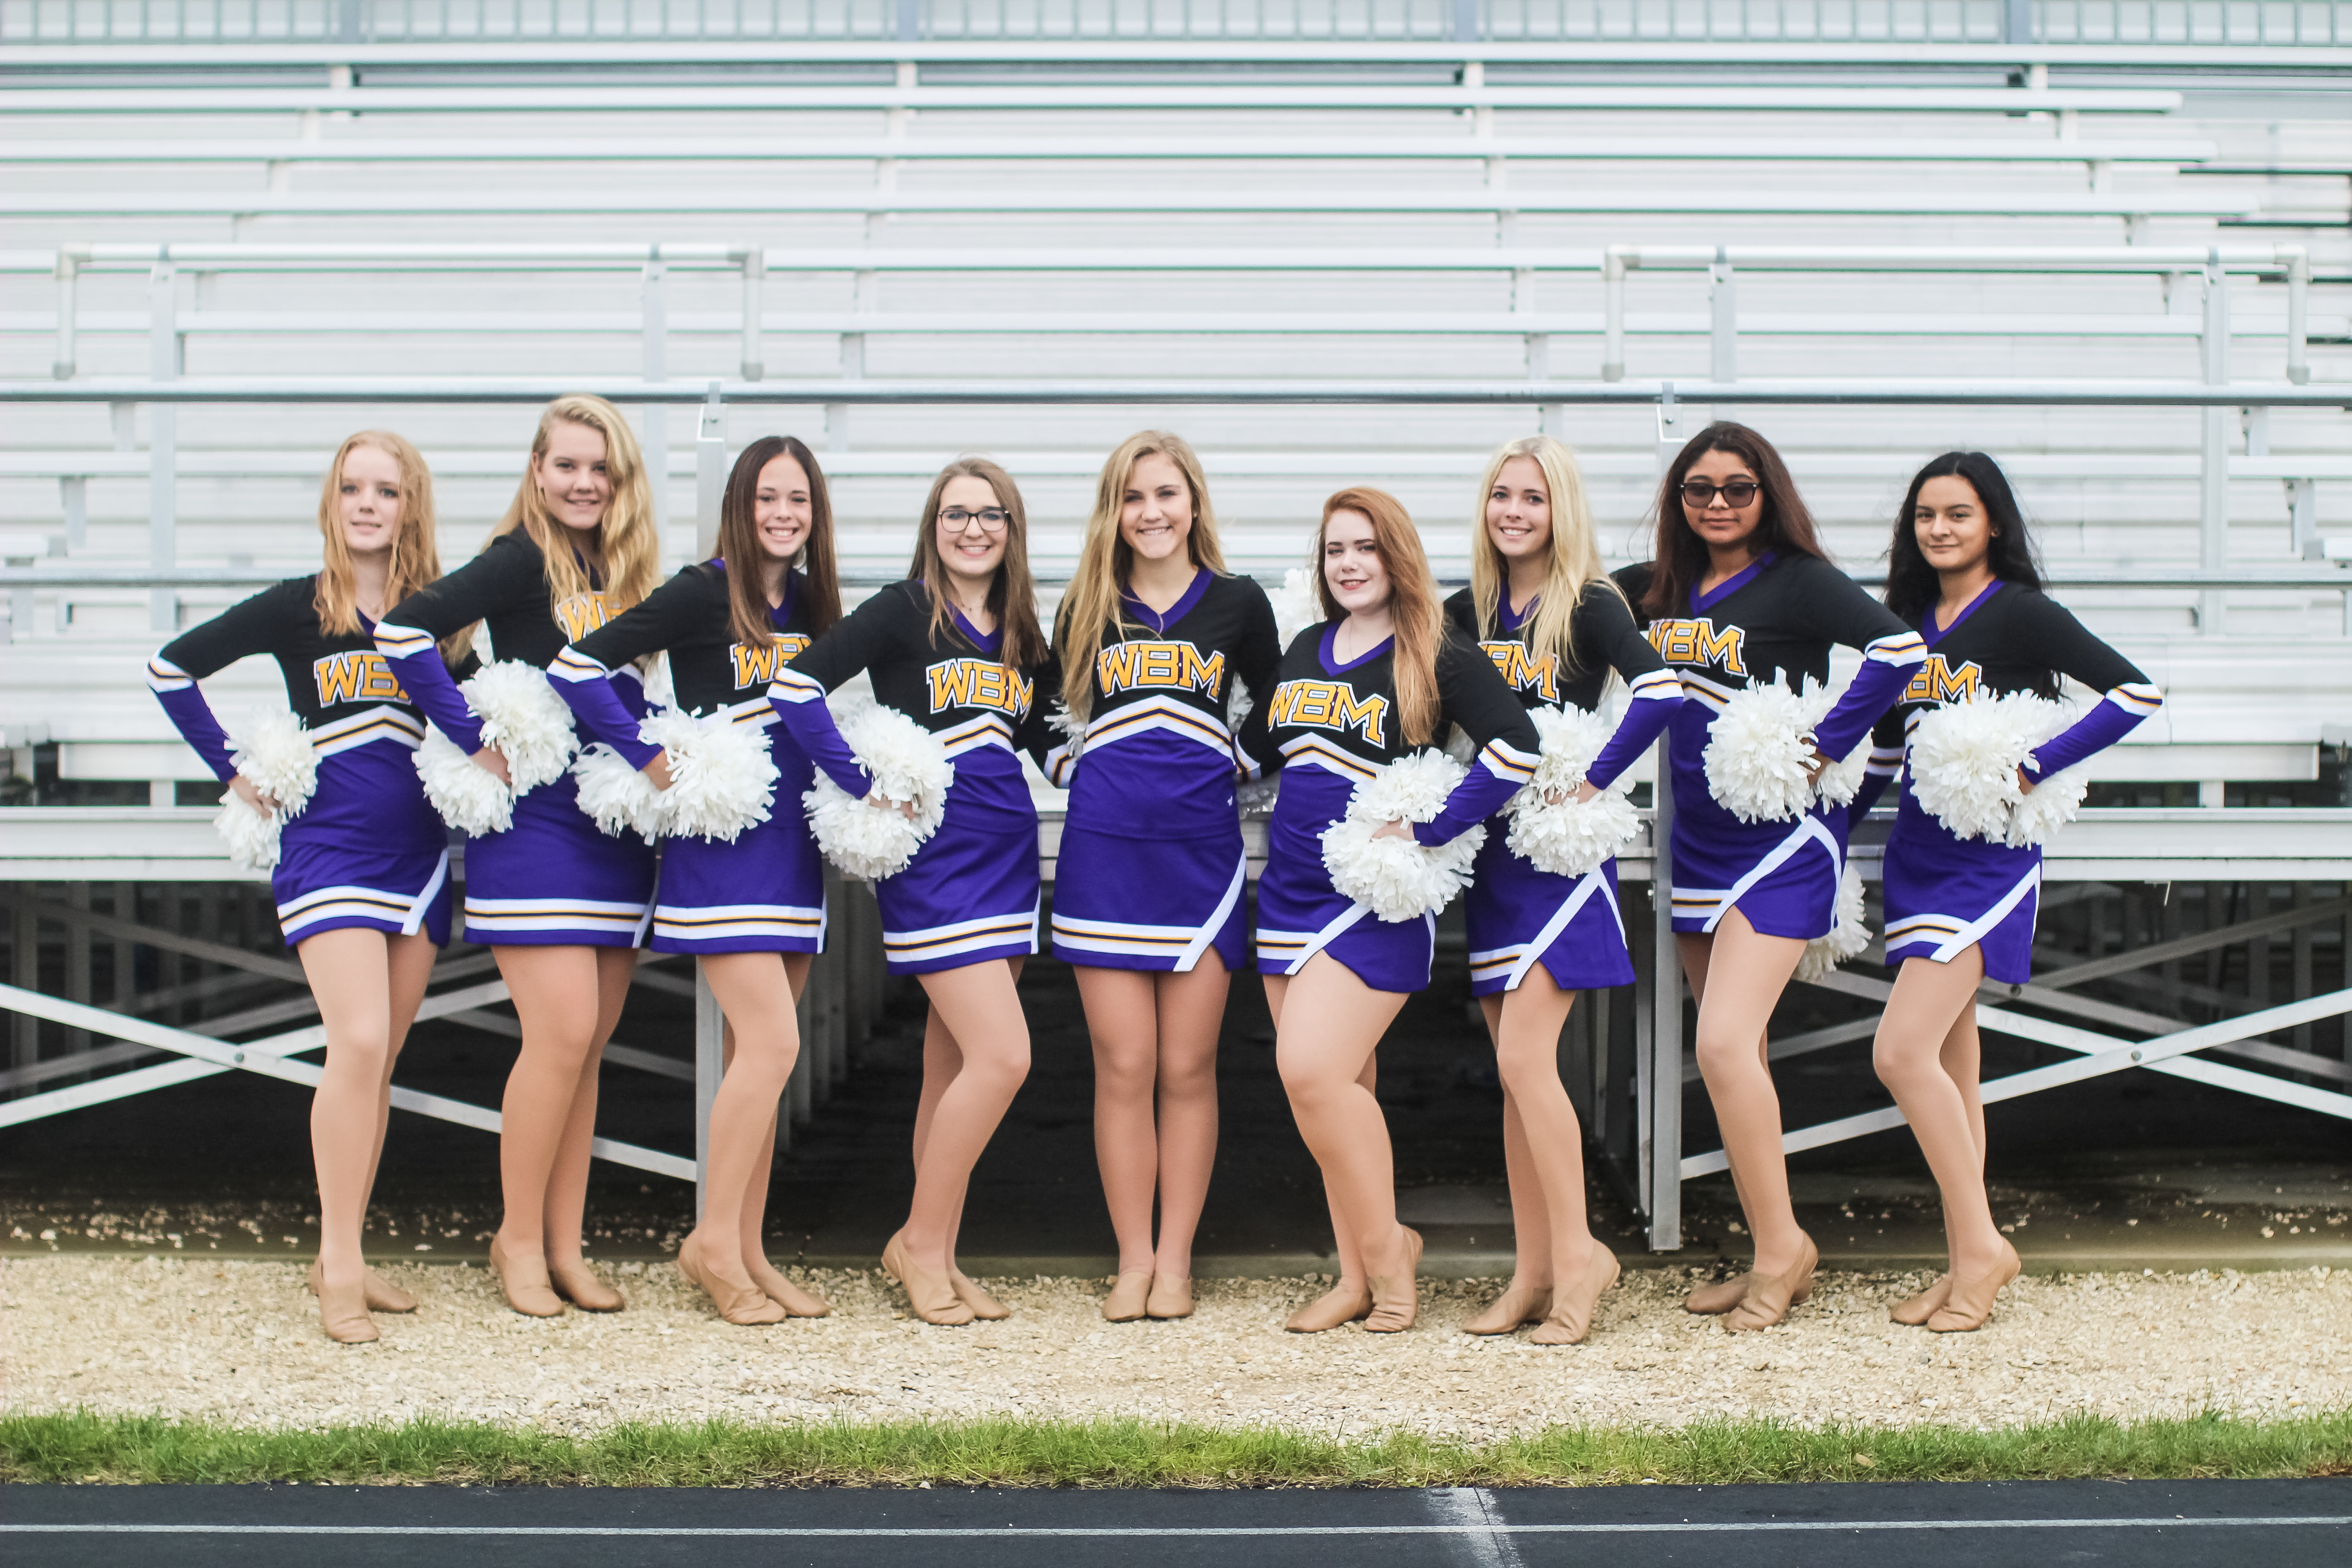 WBM Dance Team 2019 - 2020 Photo Courtesy of Lauren Fehr Photography